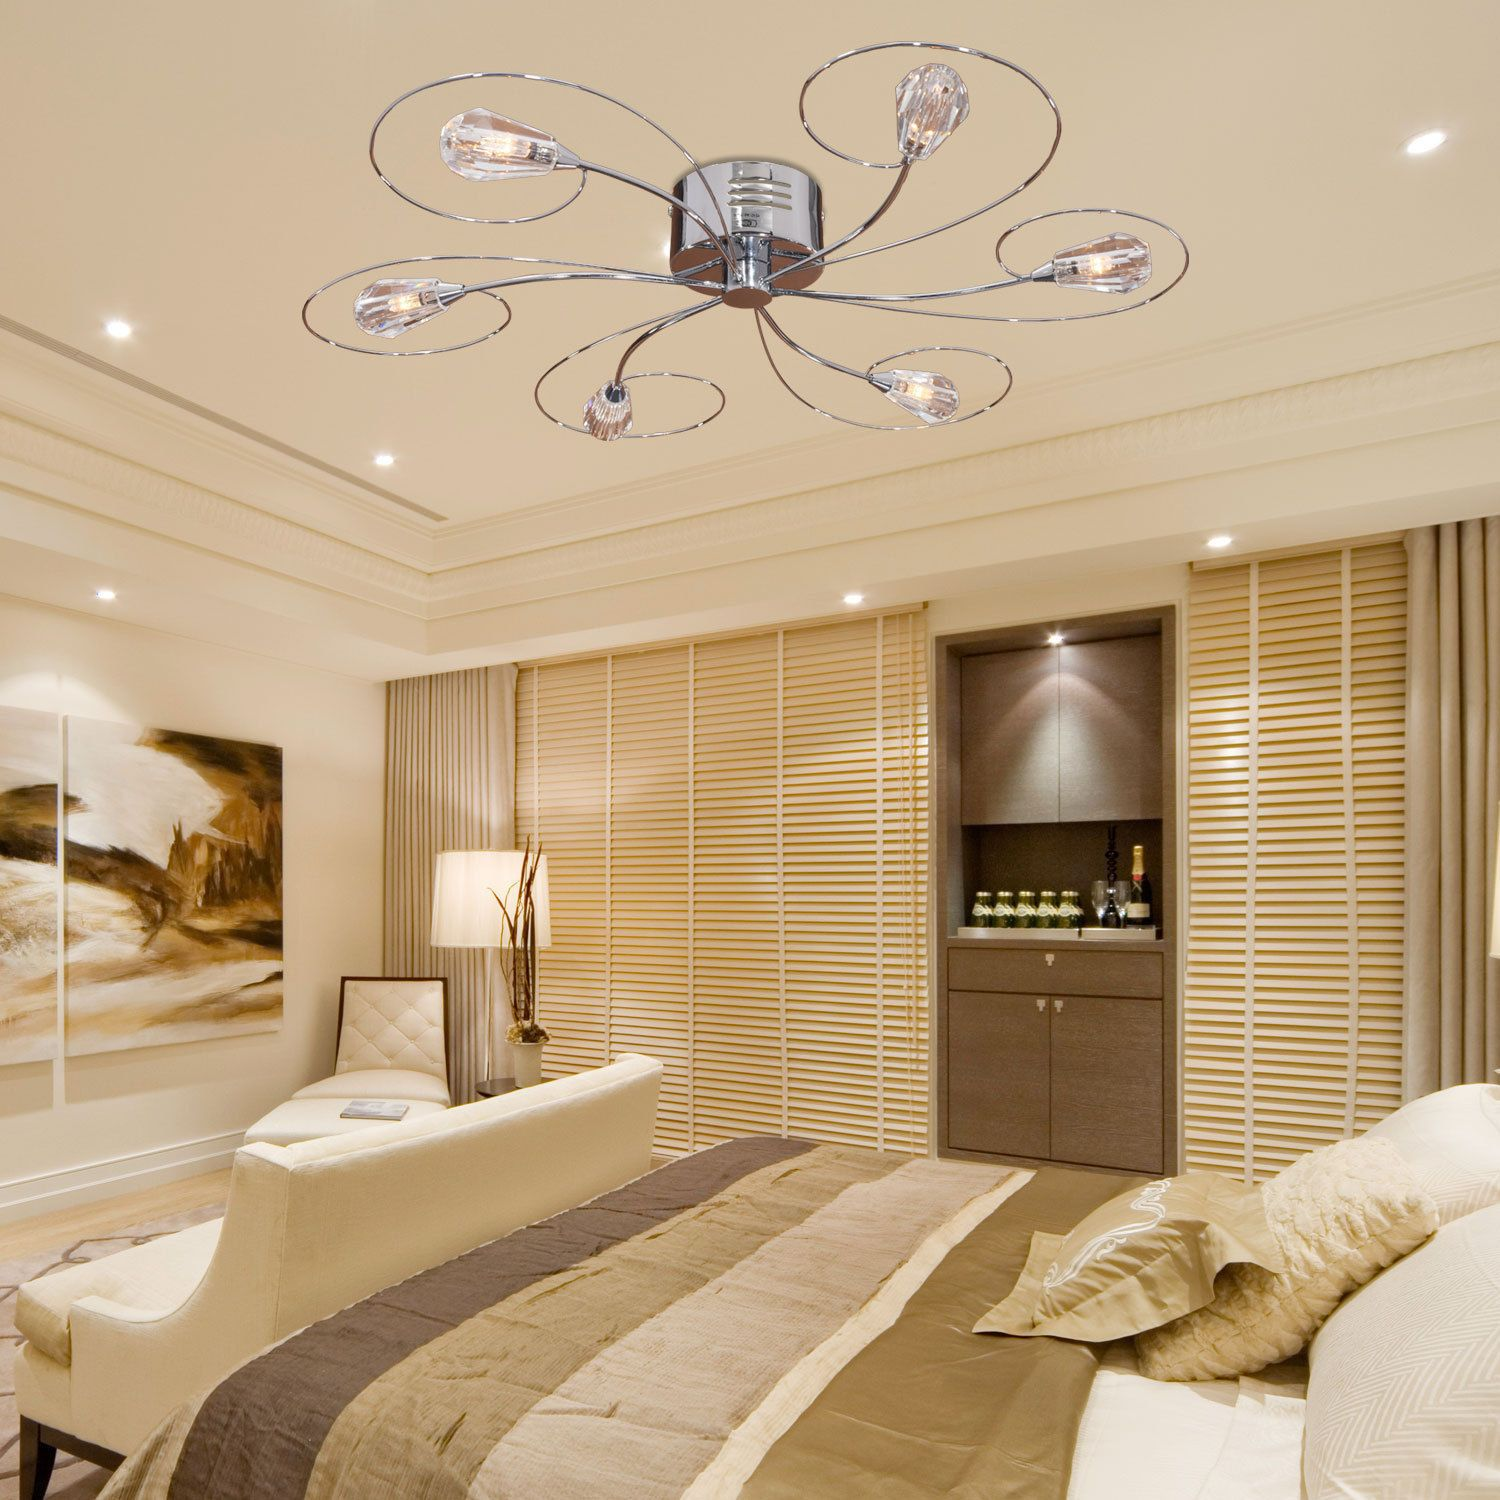 How To Select Bedroom Ceiling Fans With Lights Designalls In 2020 Ceiling Fan Bedroom Bedroom Ceiling Fan Light Contemporary Ceiling Fans